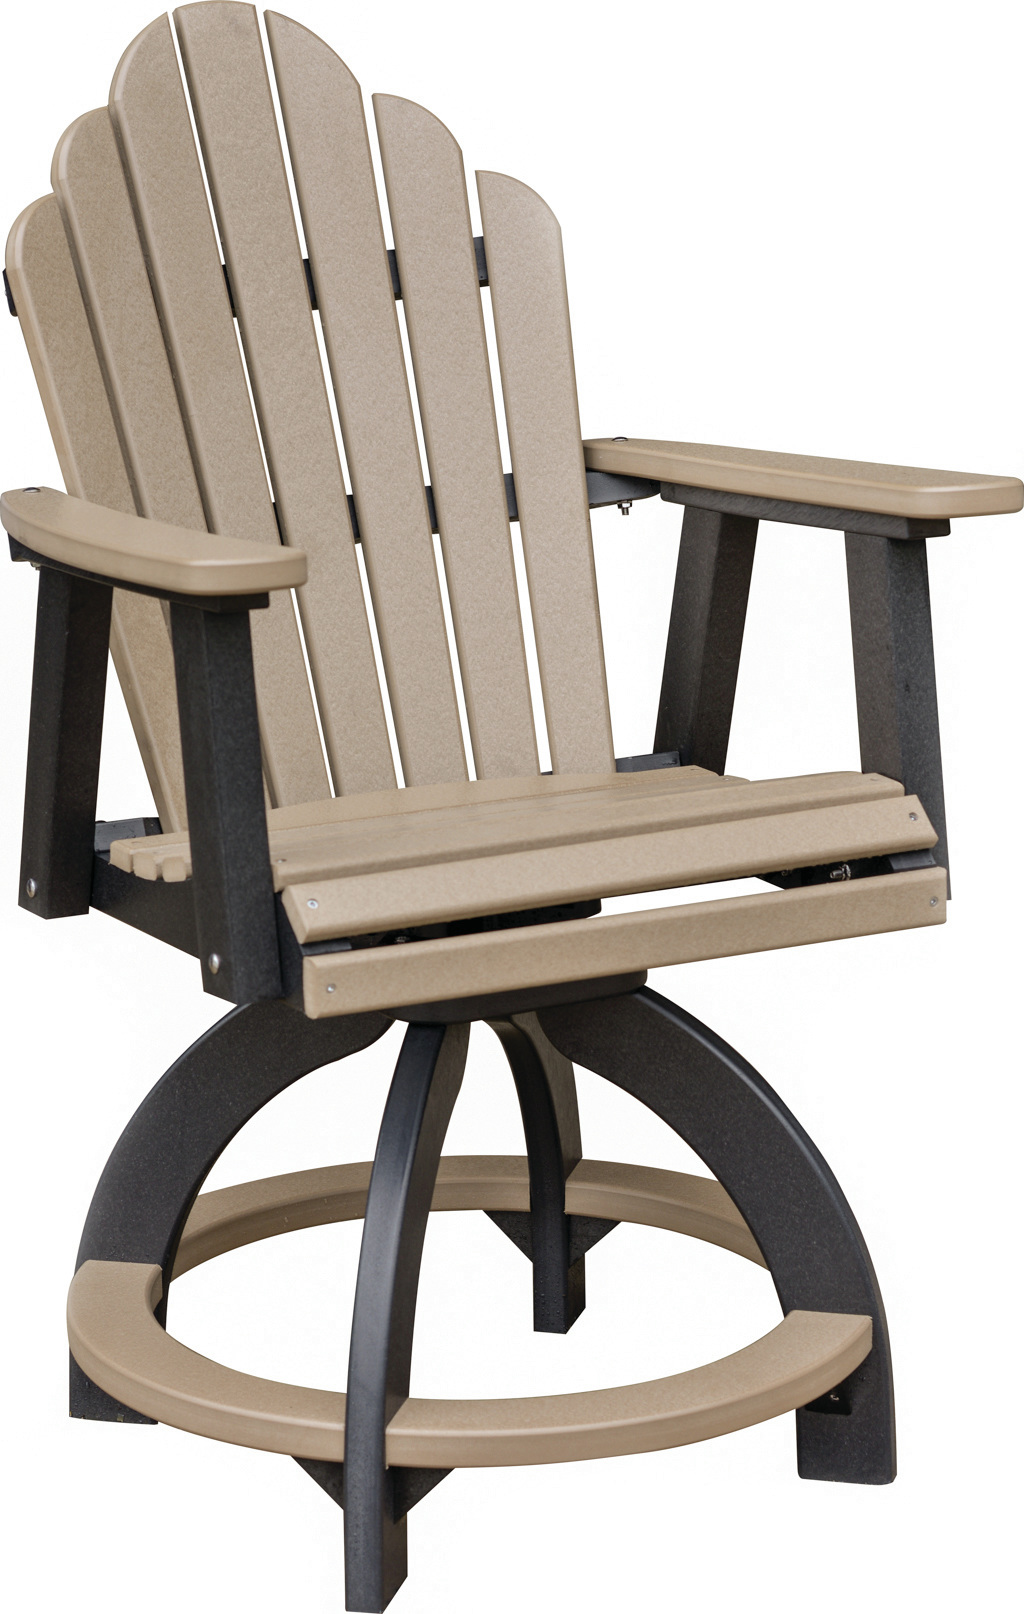 counter height chairs with back sears lawn swivel chair cozi